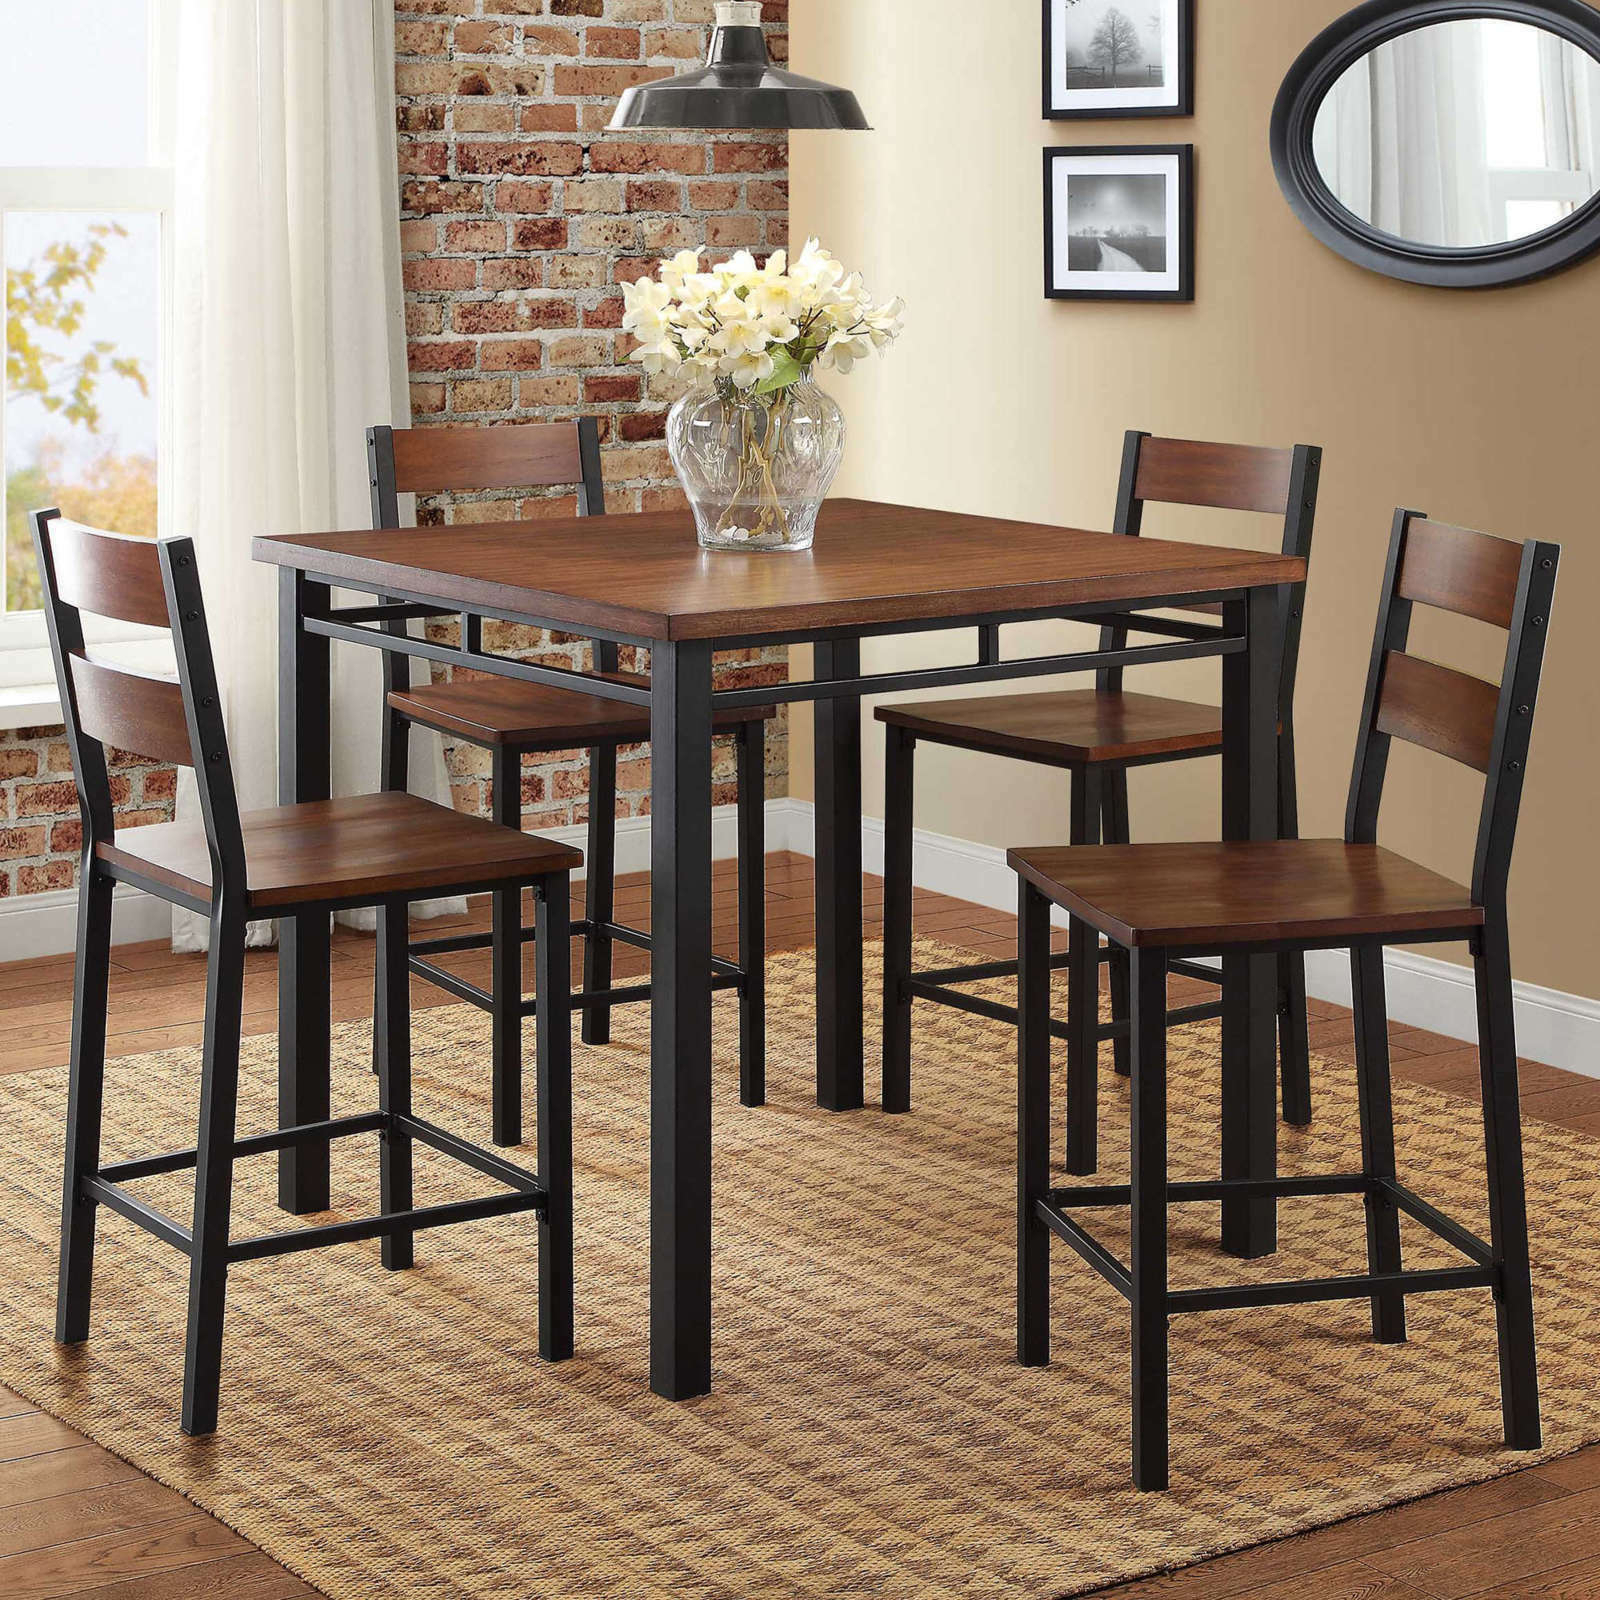 Details About 5 Piece Counter Height Dining Set 4 Chairs Table Kitchen Breakfast Nook Brown Intended For Preferred 5 Piece Breakfast Nook Dining Sets (View 11 of 20)